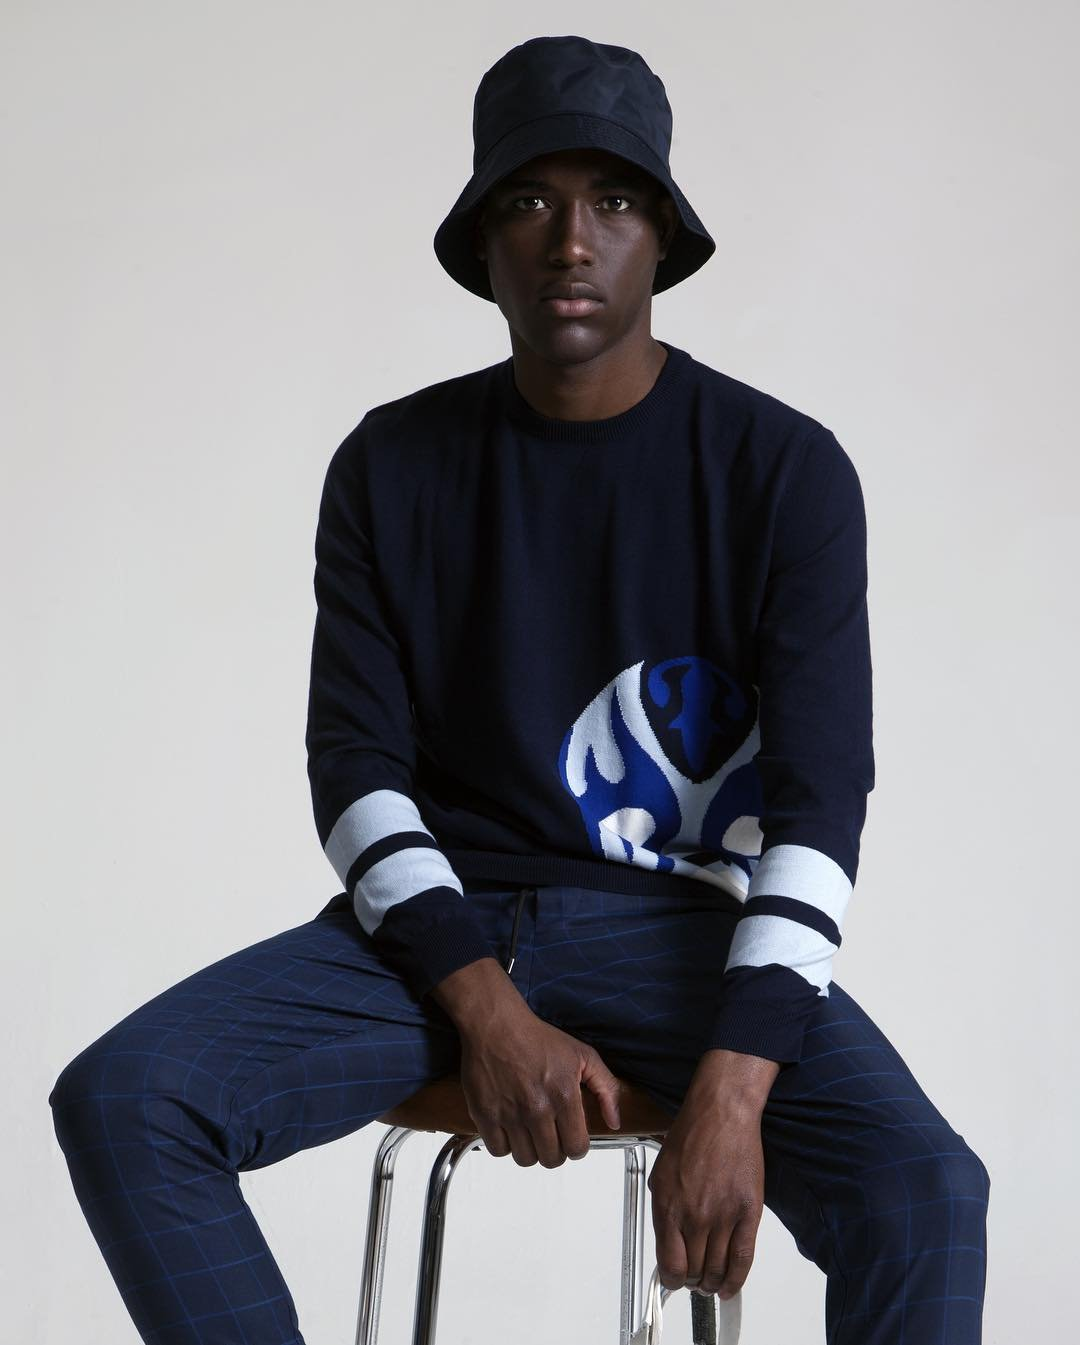 newcomer models to watch